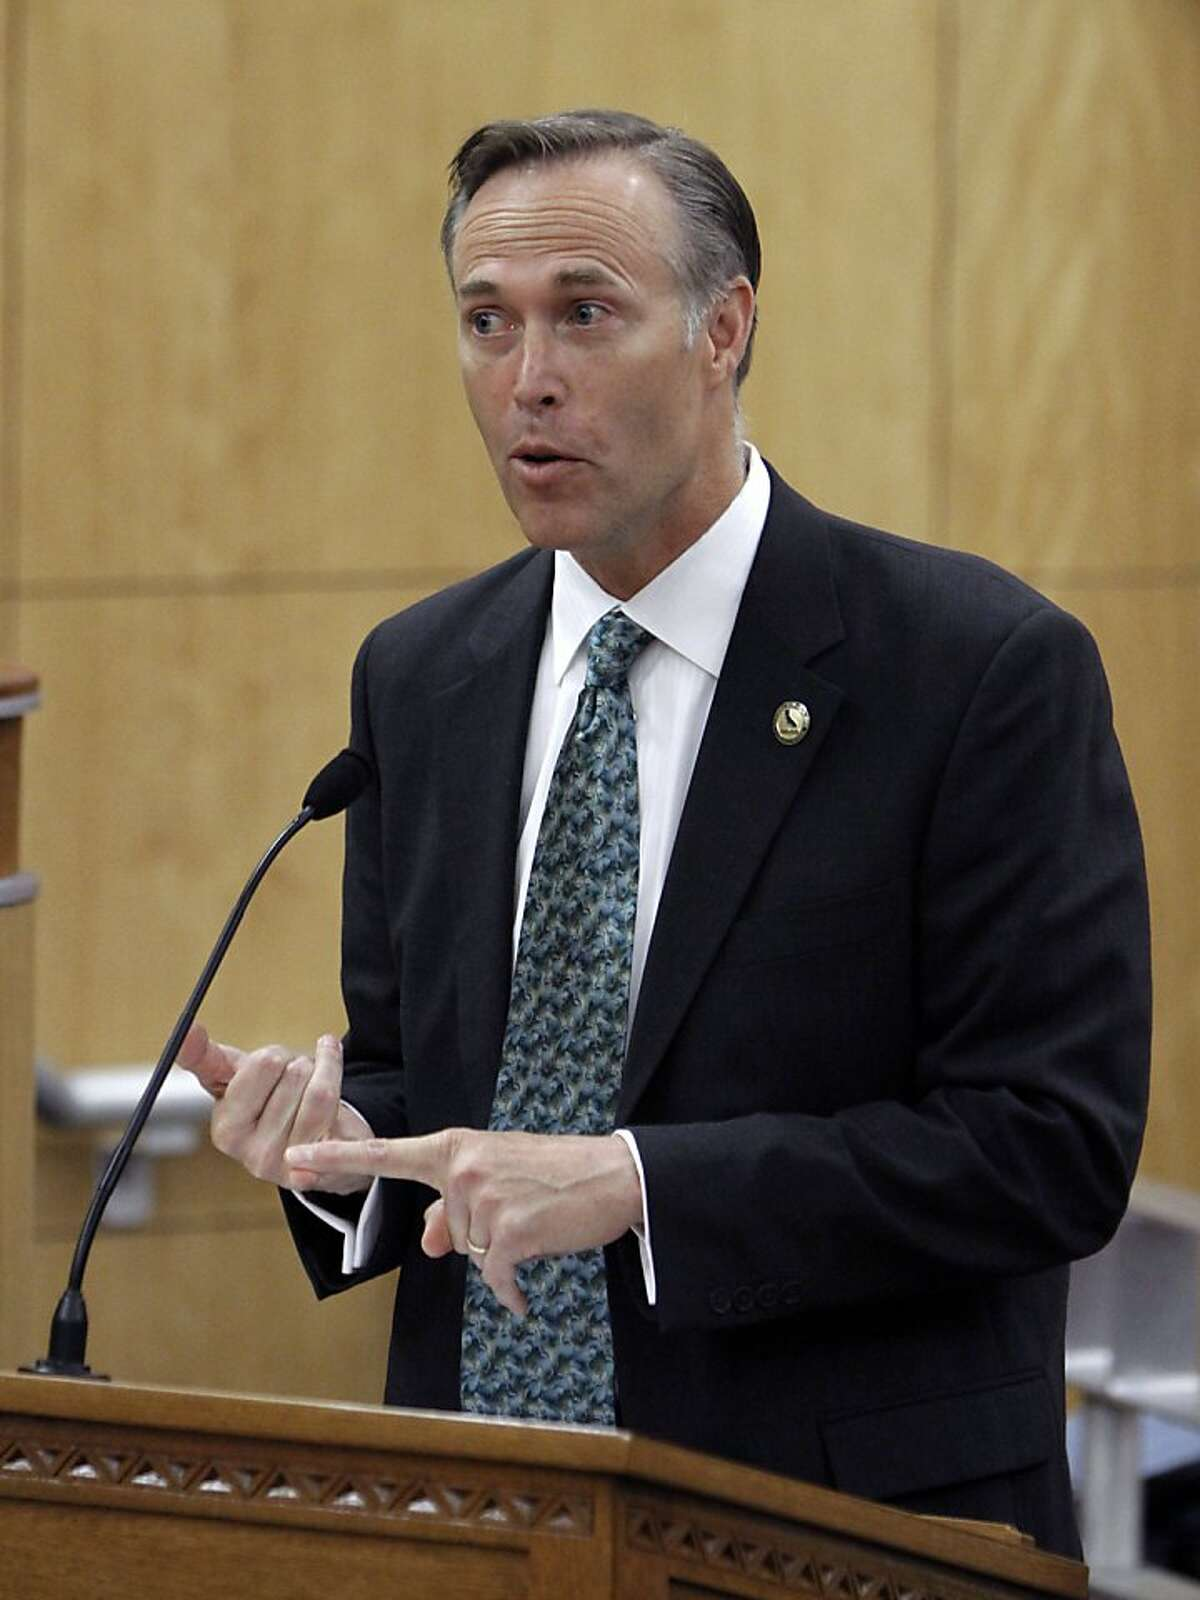 Assemblyman Jared Huffman, D-San Rafael, lists some of the reasons for his measure to impose a two-year moratorium on the use of metal bats in high school baseball during a hearing at the Capitol in Sacramento, Calif., Wednesday, May 5, 2010. The bill, introduced after a 16-year-old pitcher for Marin Catholic High School was struck in the head by a line drive hit off an aluminum bat, was approved by the Senate Education Committee 5-1.(AP Photo/Rich Pedroncelli)